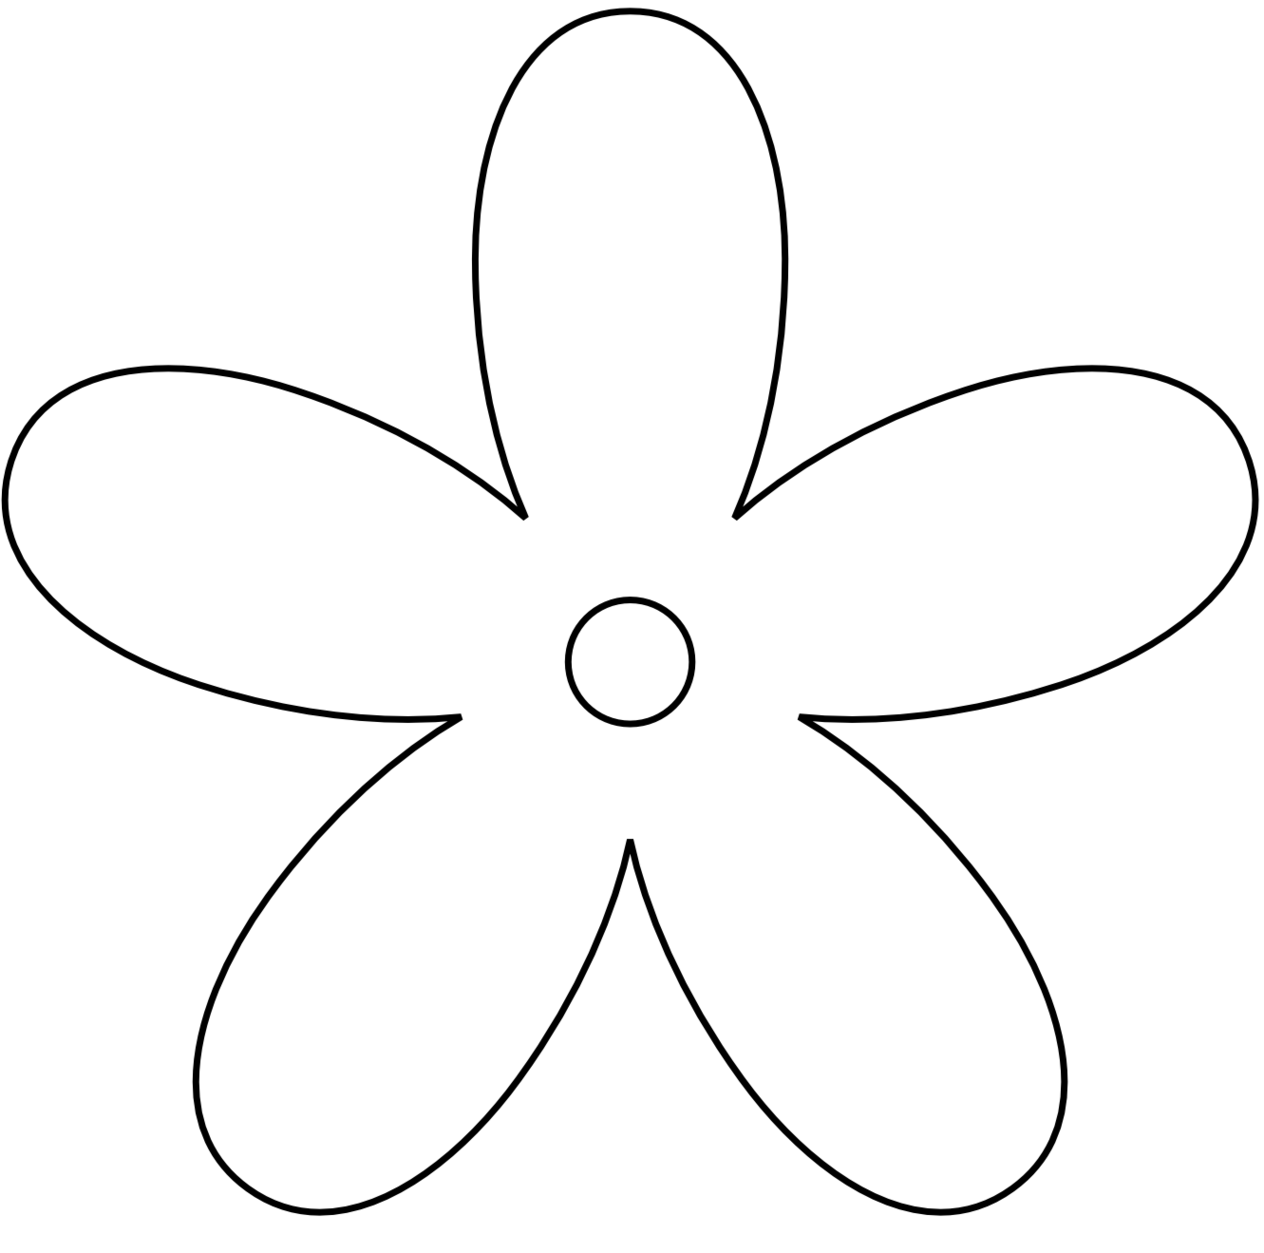 Flower  black and white flowers clip art black and white clipart free to use